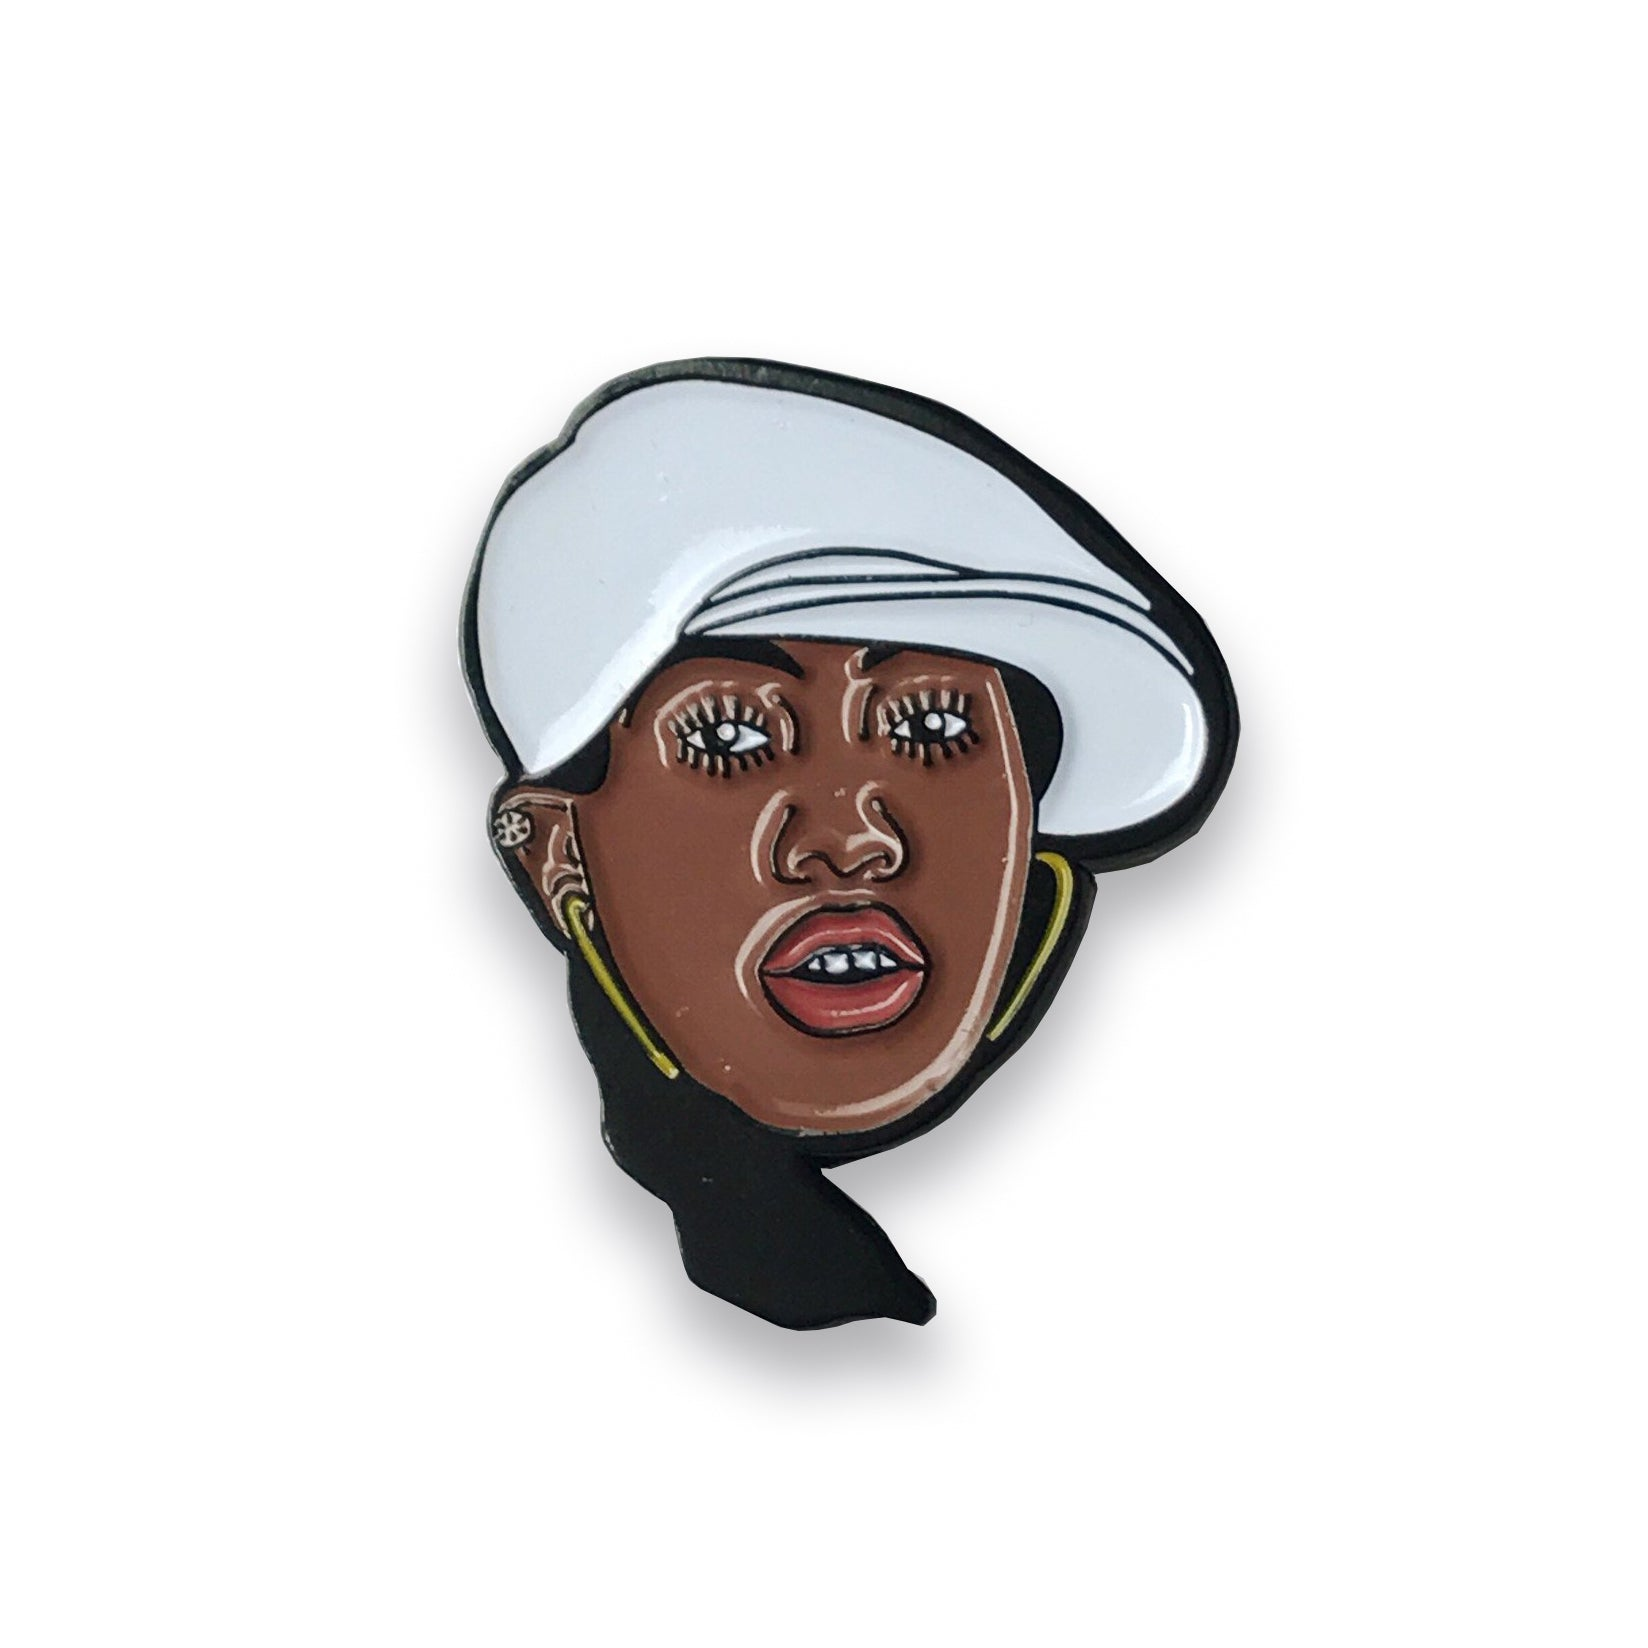 Missy Elliott Lapel Pin, Pins, - Sad Truth Supply - Enamel Pins